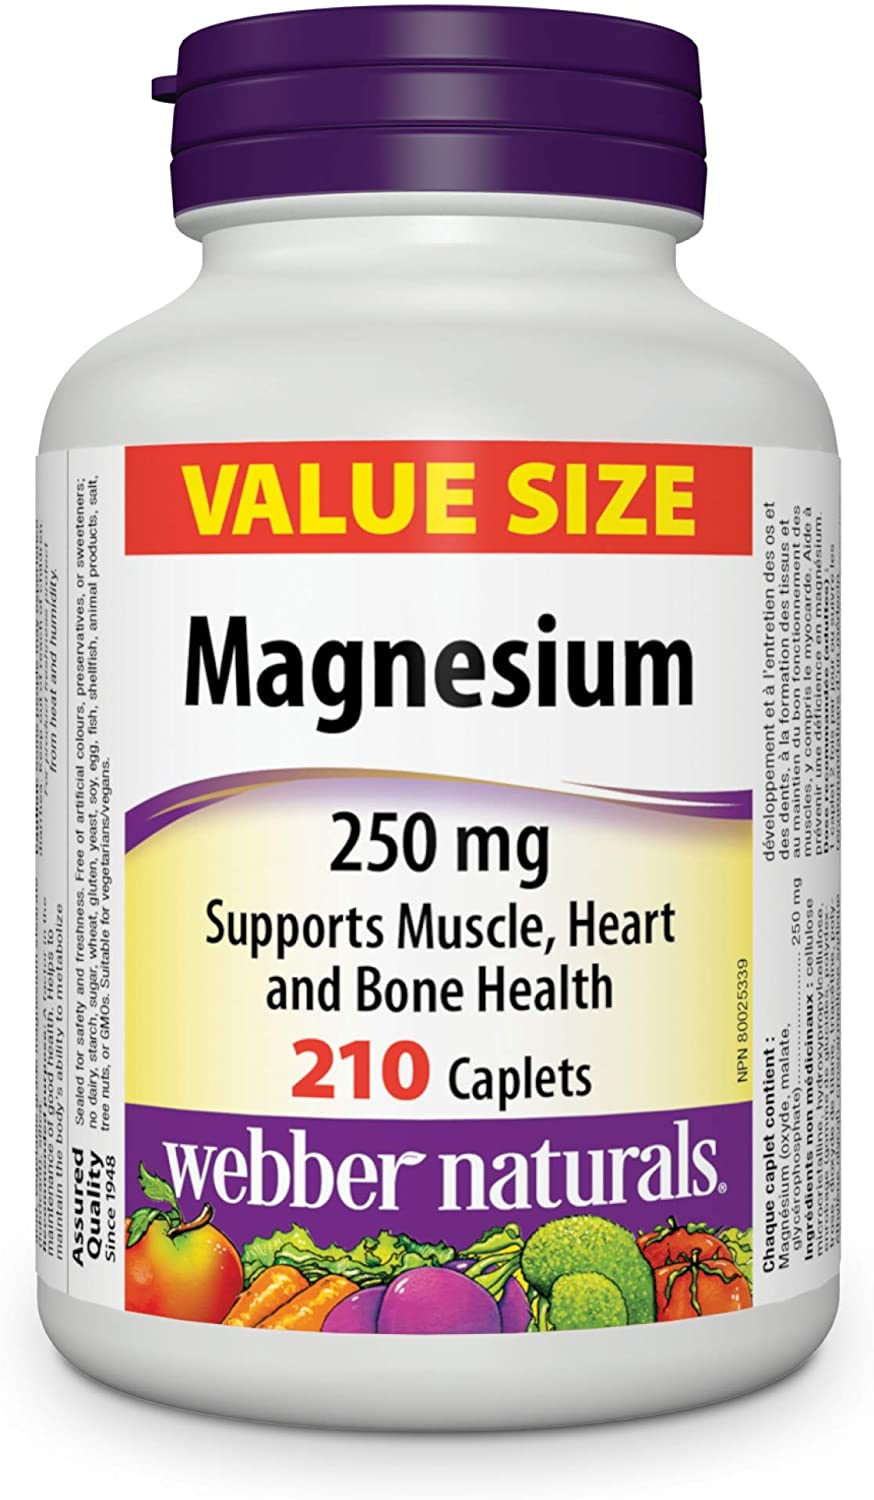 Webber Naturals Large special price !! Magnesium 1 year warranty 250 mg Size 210 caplets Value